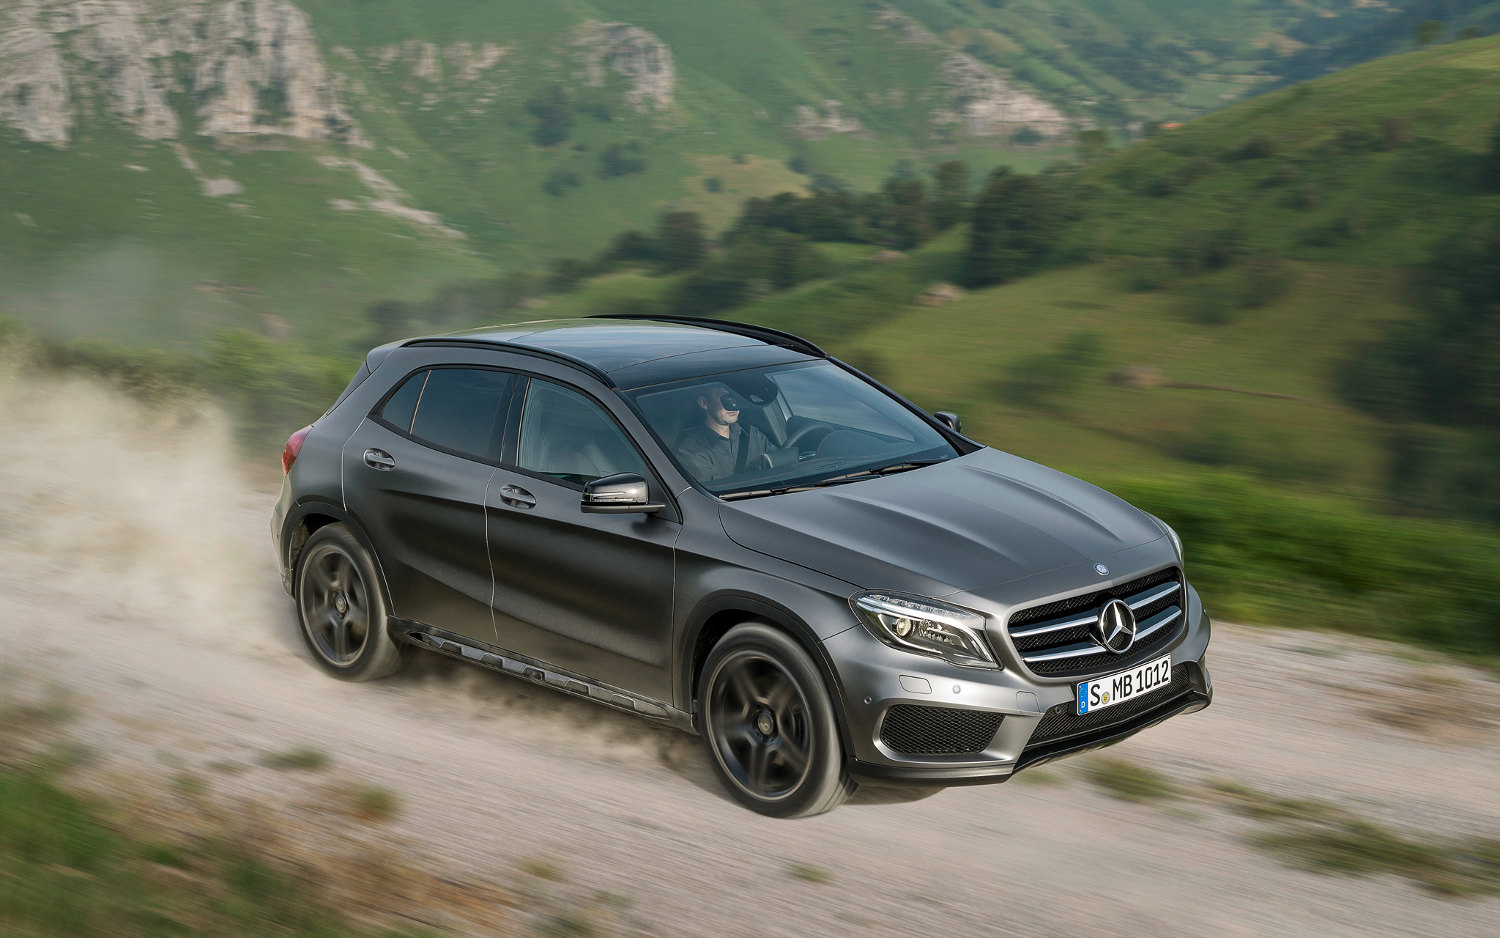 Mercedes Benz Gla Cl Amg Gla45 4matic 2017